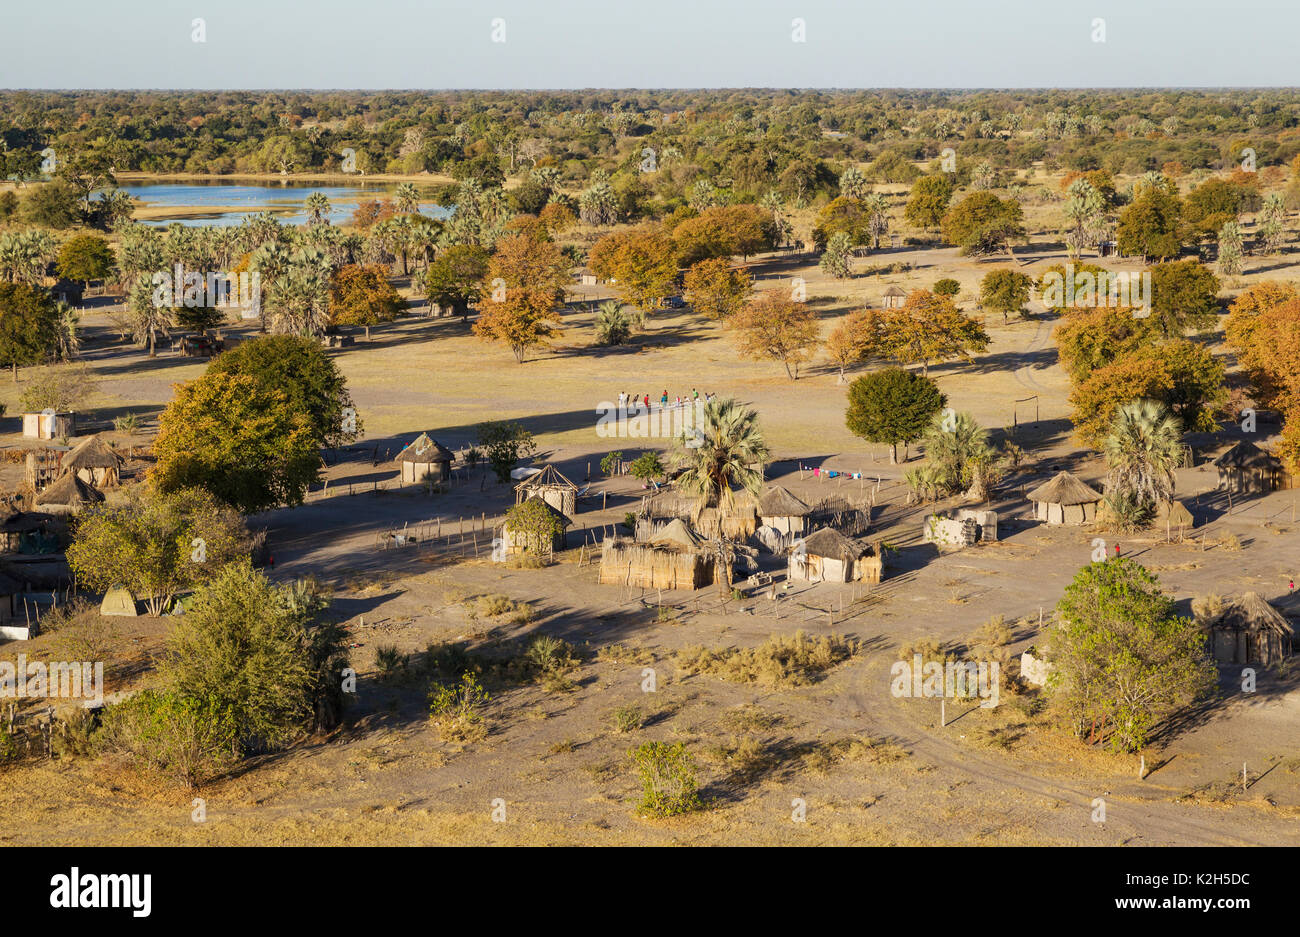 Native village just outside of the protected area, prominent a group of young men getting ready for a football match, aerial view, Okavango Delta, Botswana - Stock Image